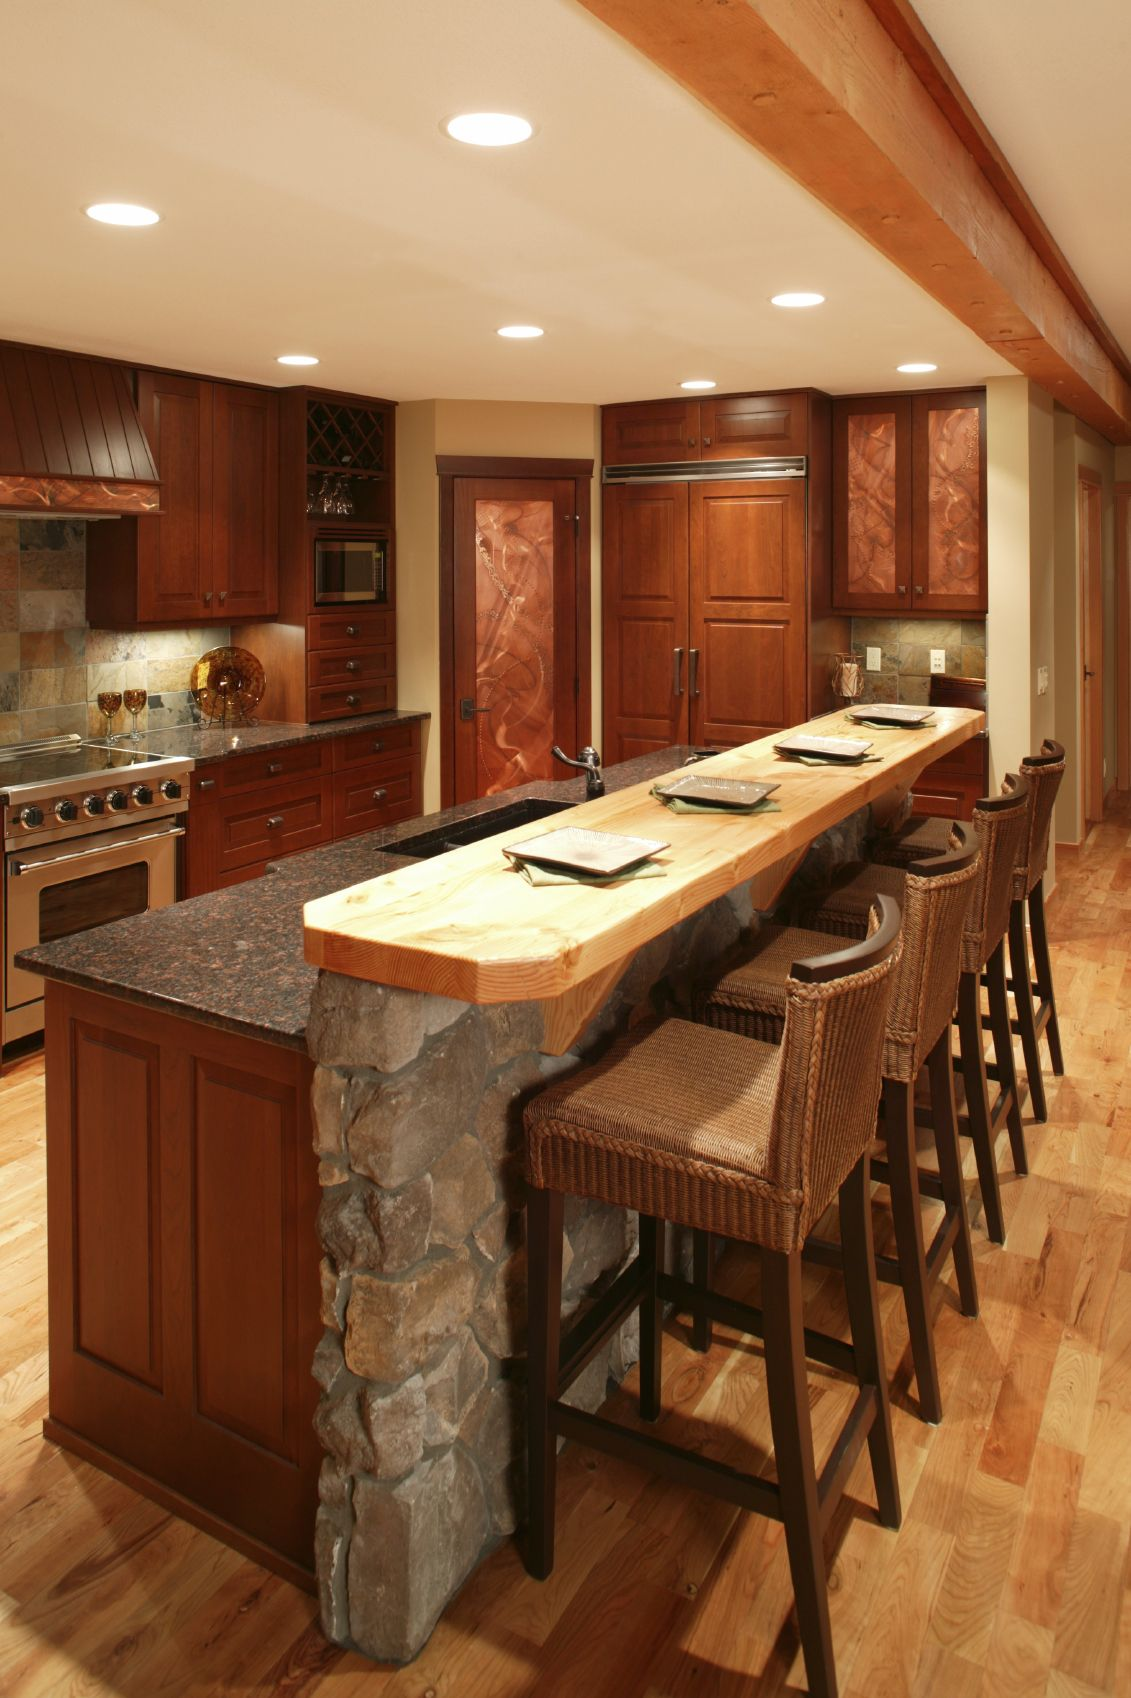 Island prised of stone wall and rich wood paneling matching the